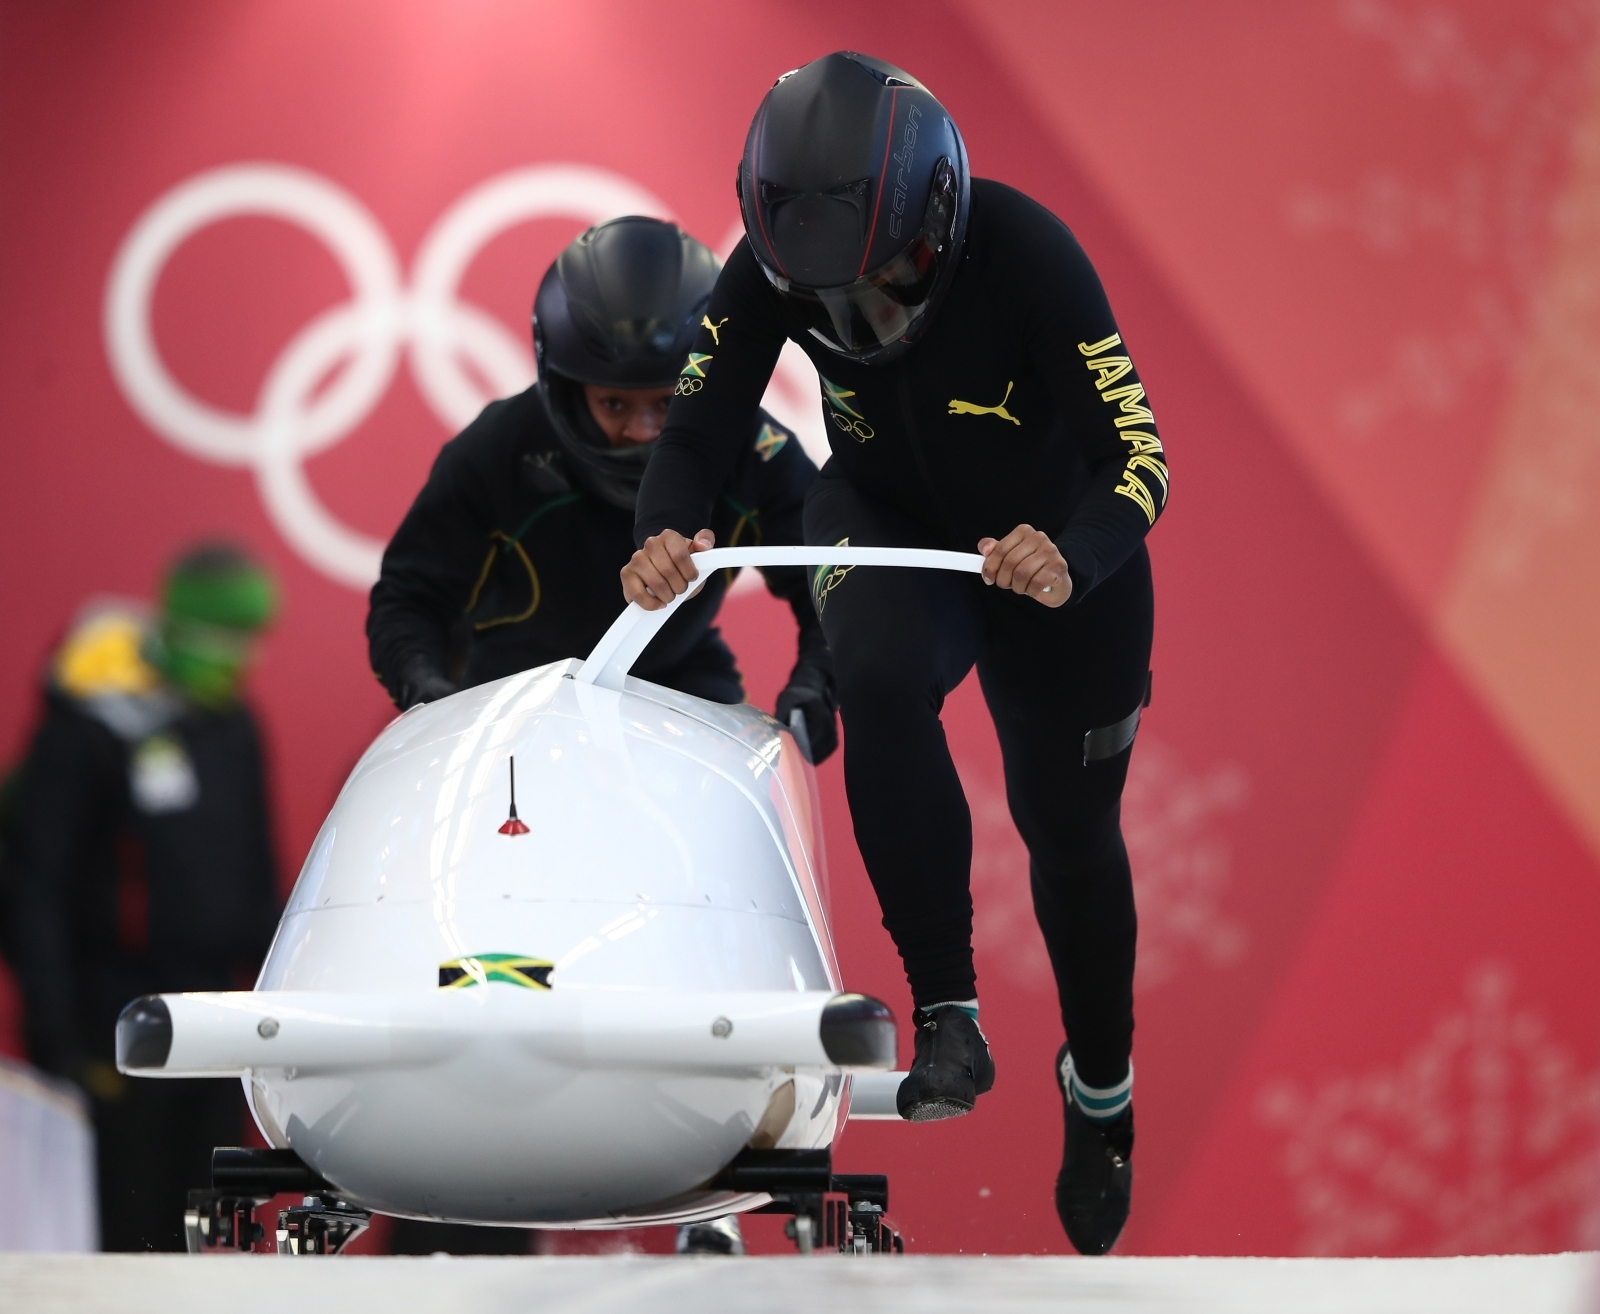 Jazmine Fenlator-Victoria of Jamaica trains during Bobsleigh practice ahead of the 2018 Winter Olympic Games at Olympic Sliding Centre in Pyeongchang-gun, South Korea